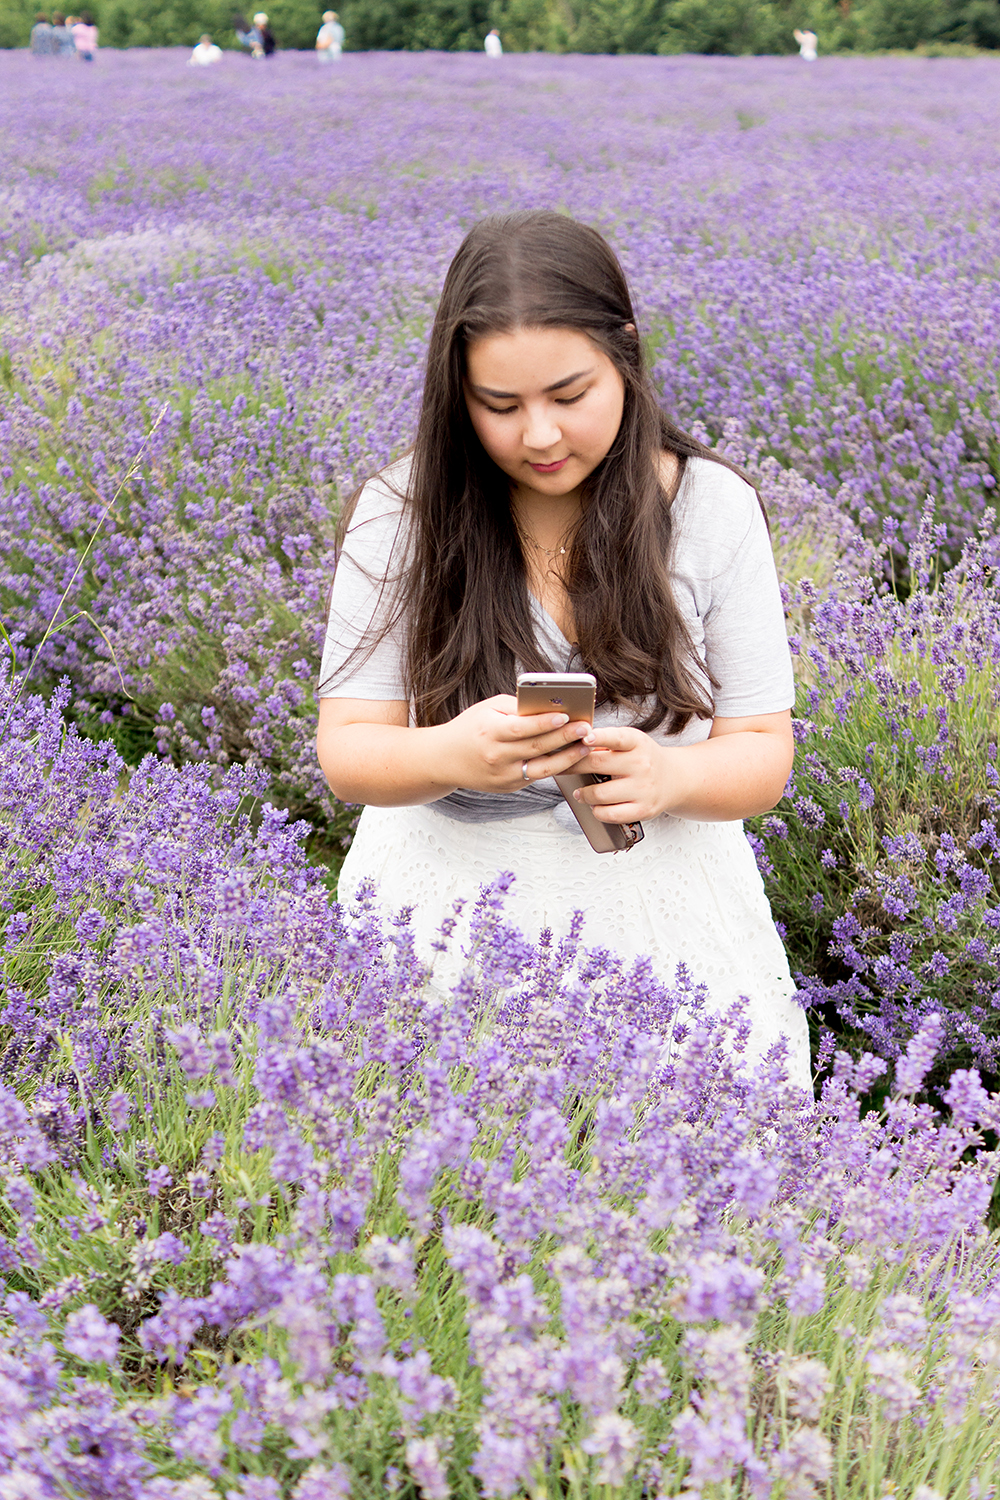 Mayfield-lavender-Boden-fashion-style-broderie-photography-Barely-There-Beauty-blog